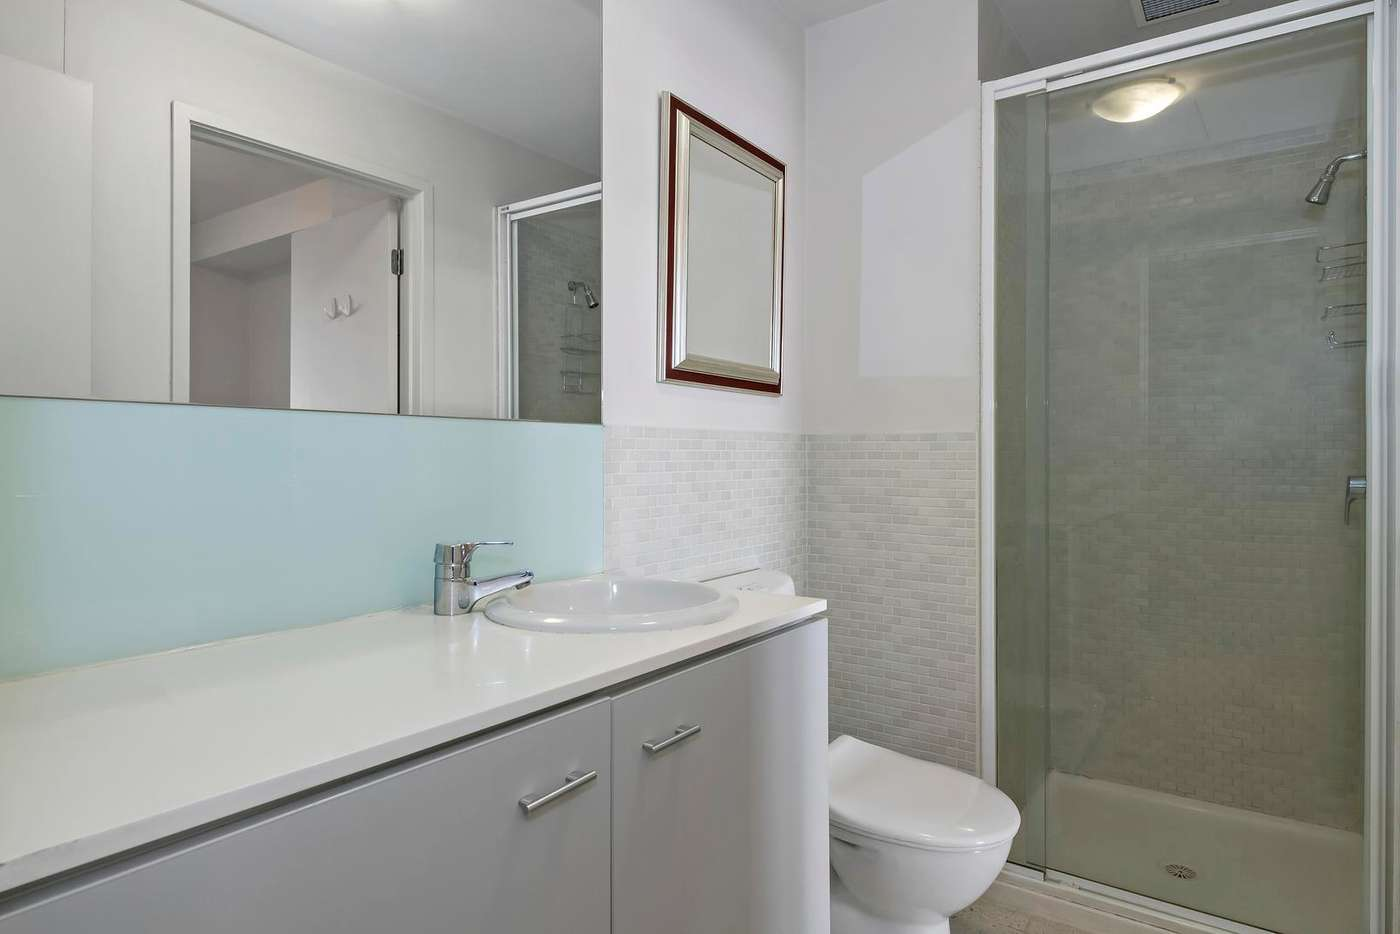 Fifth view of Homely apartment listing, 802/115 Swanston Street, Melbourne VIC 3000